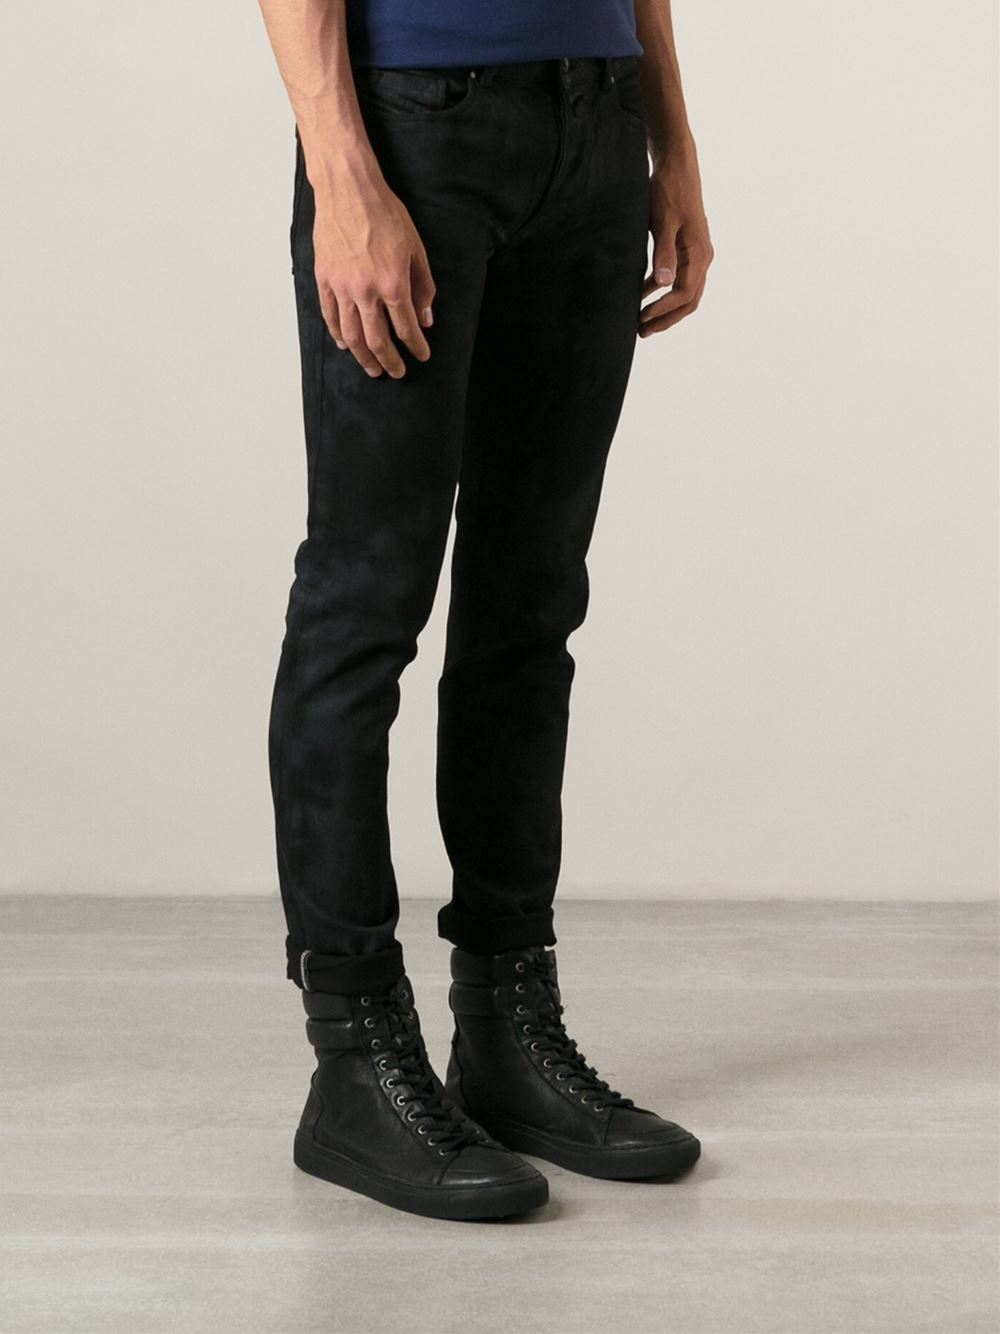 Diesel black gold Patterned Skinny Jeans in Black for Men | Lyst